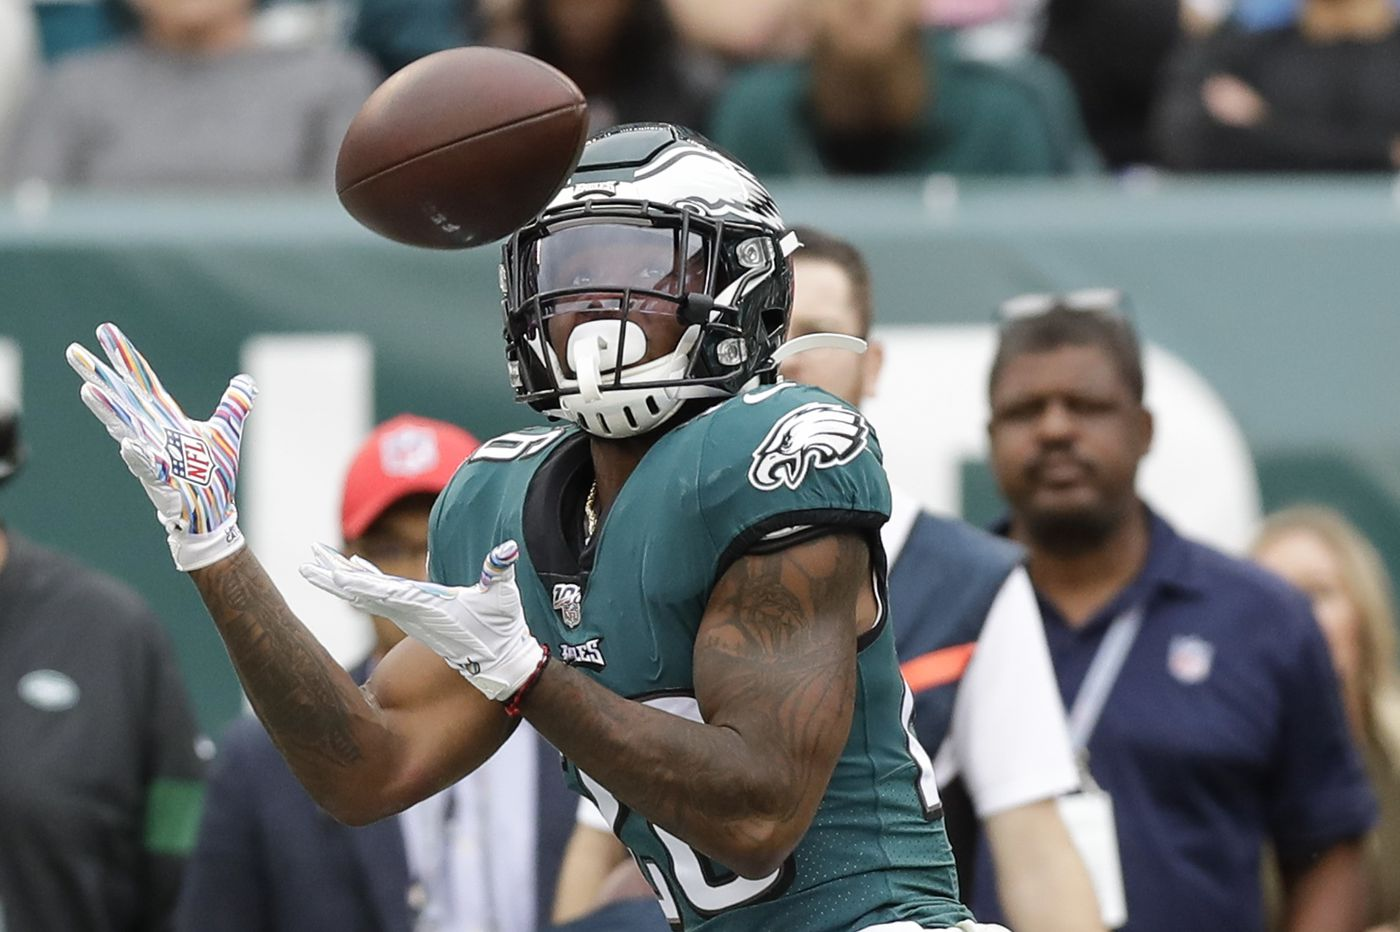 Miles Sanders, a rookie running back, has become the Eagles' most dangerous deep threat